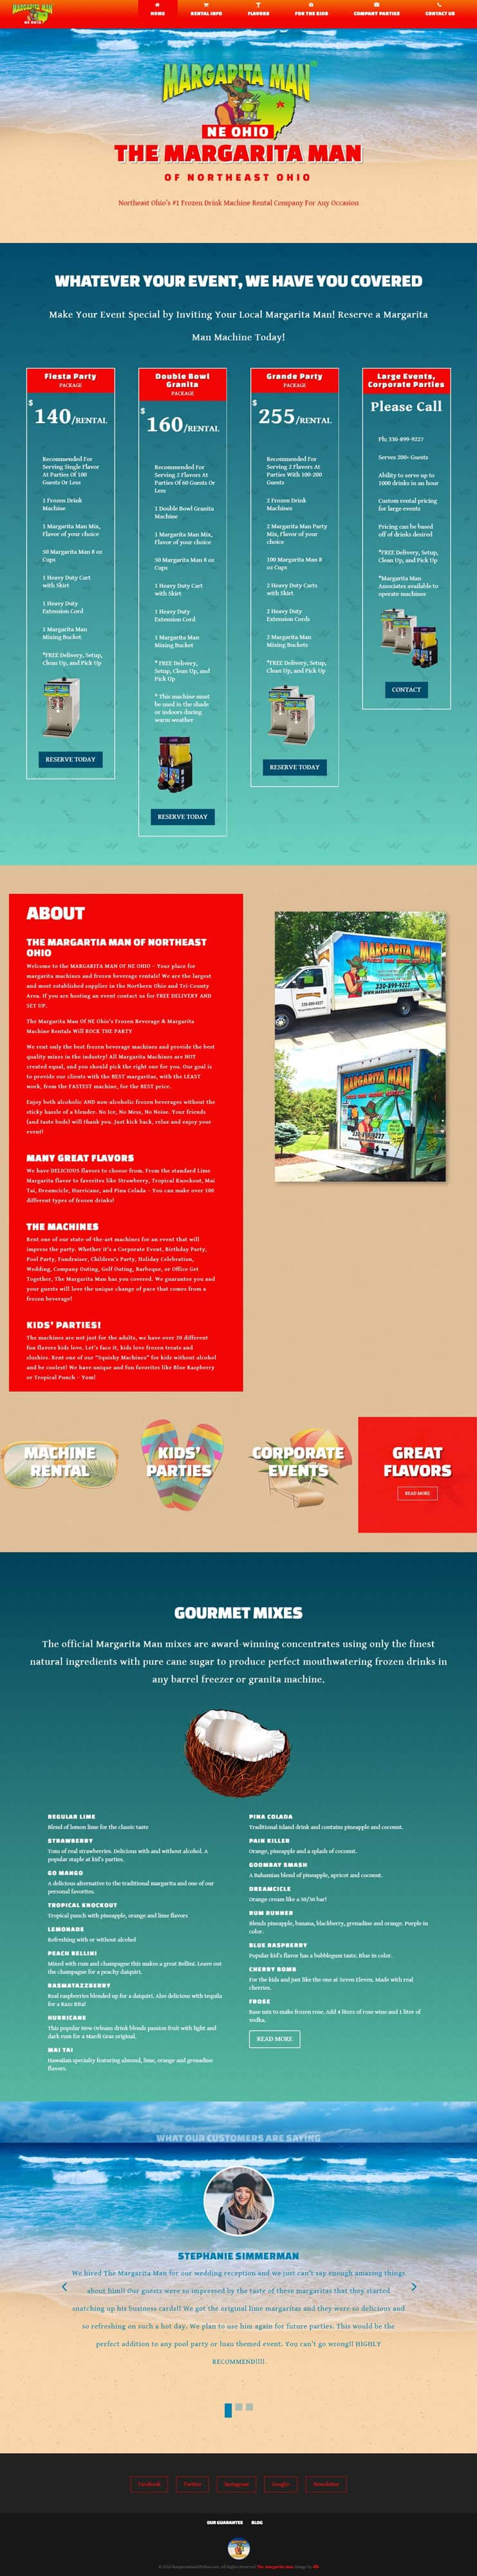 the margarita man website design by dlb web media home page